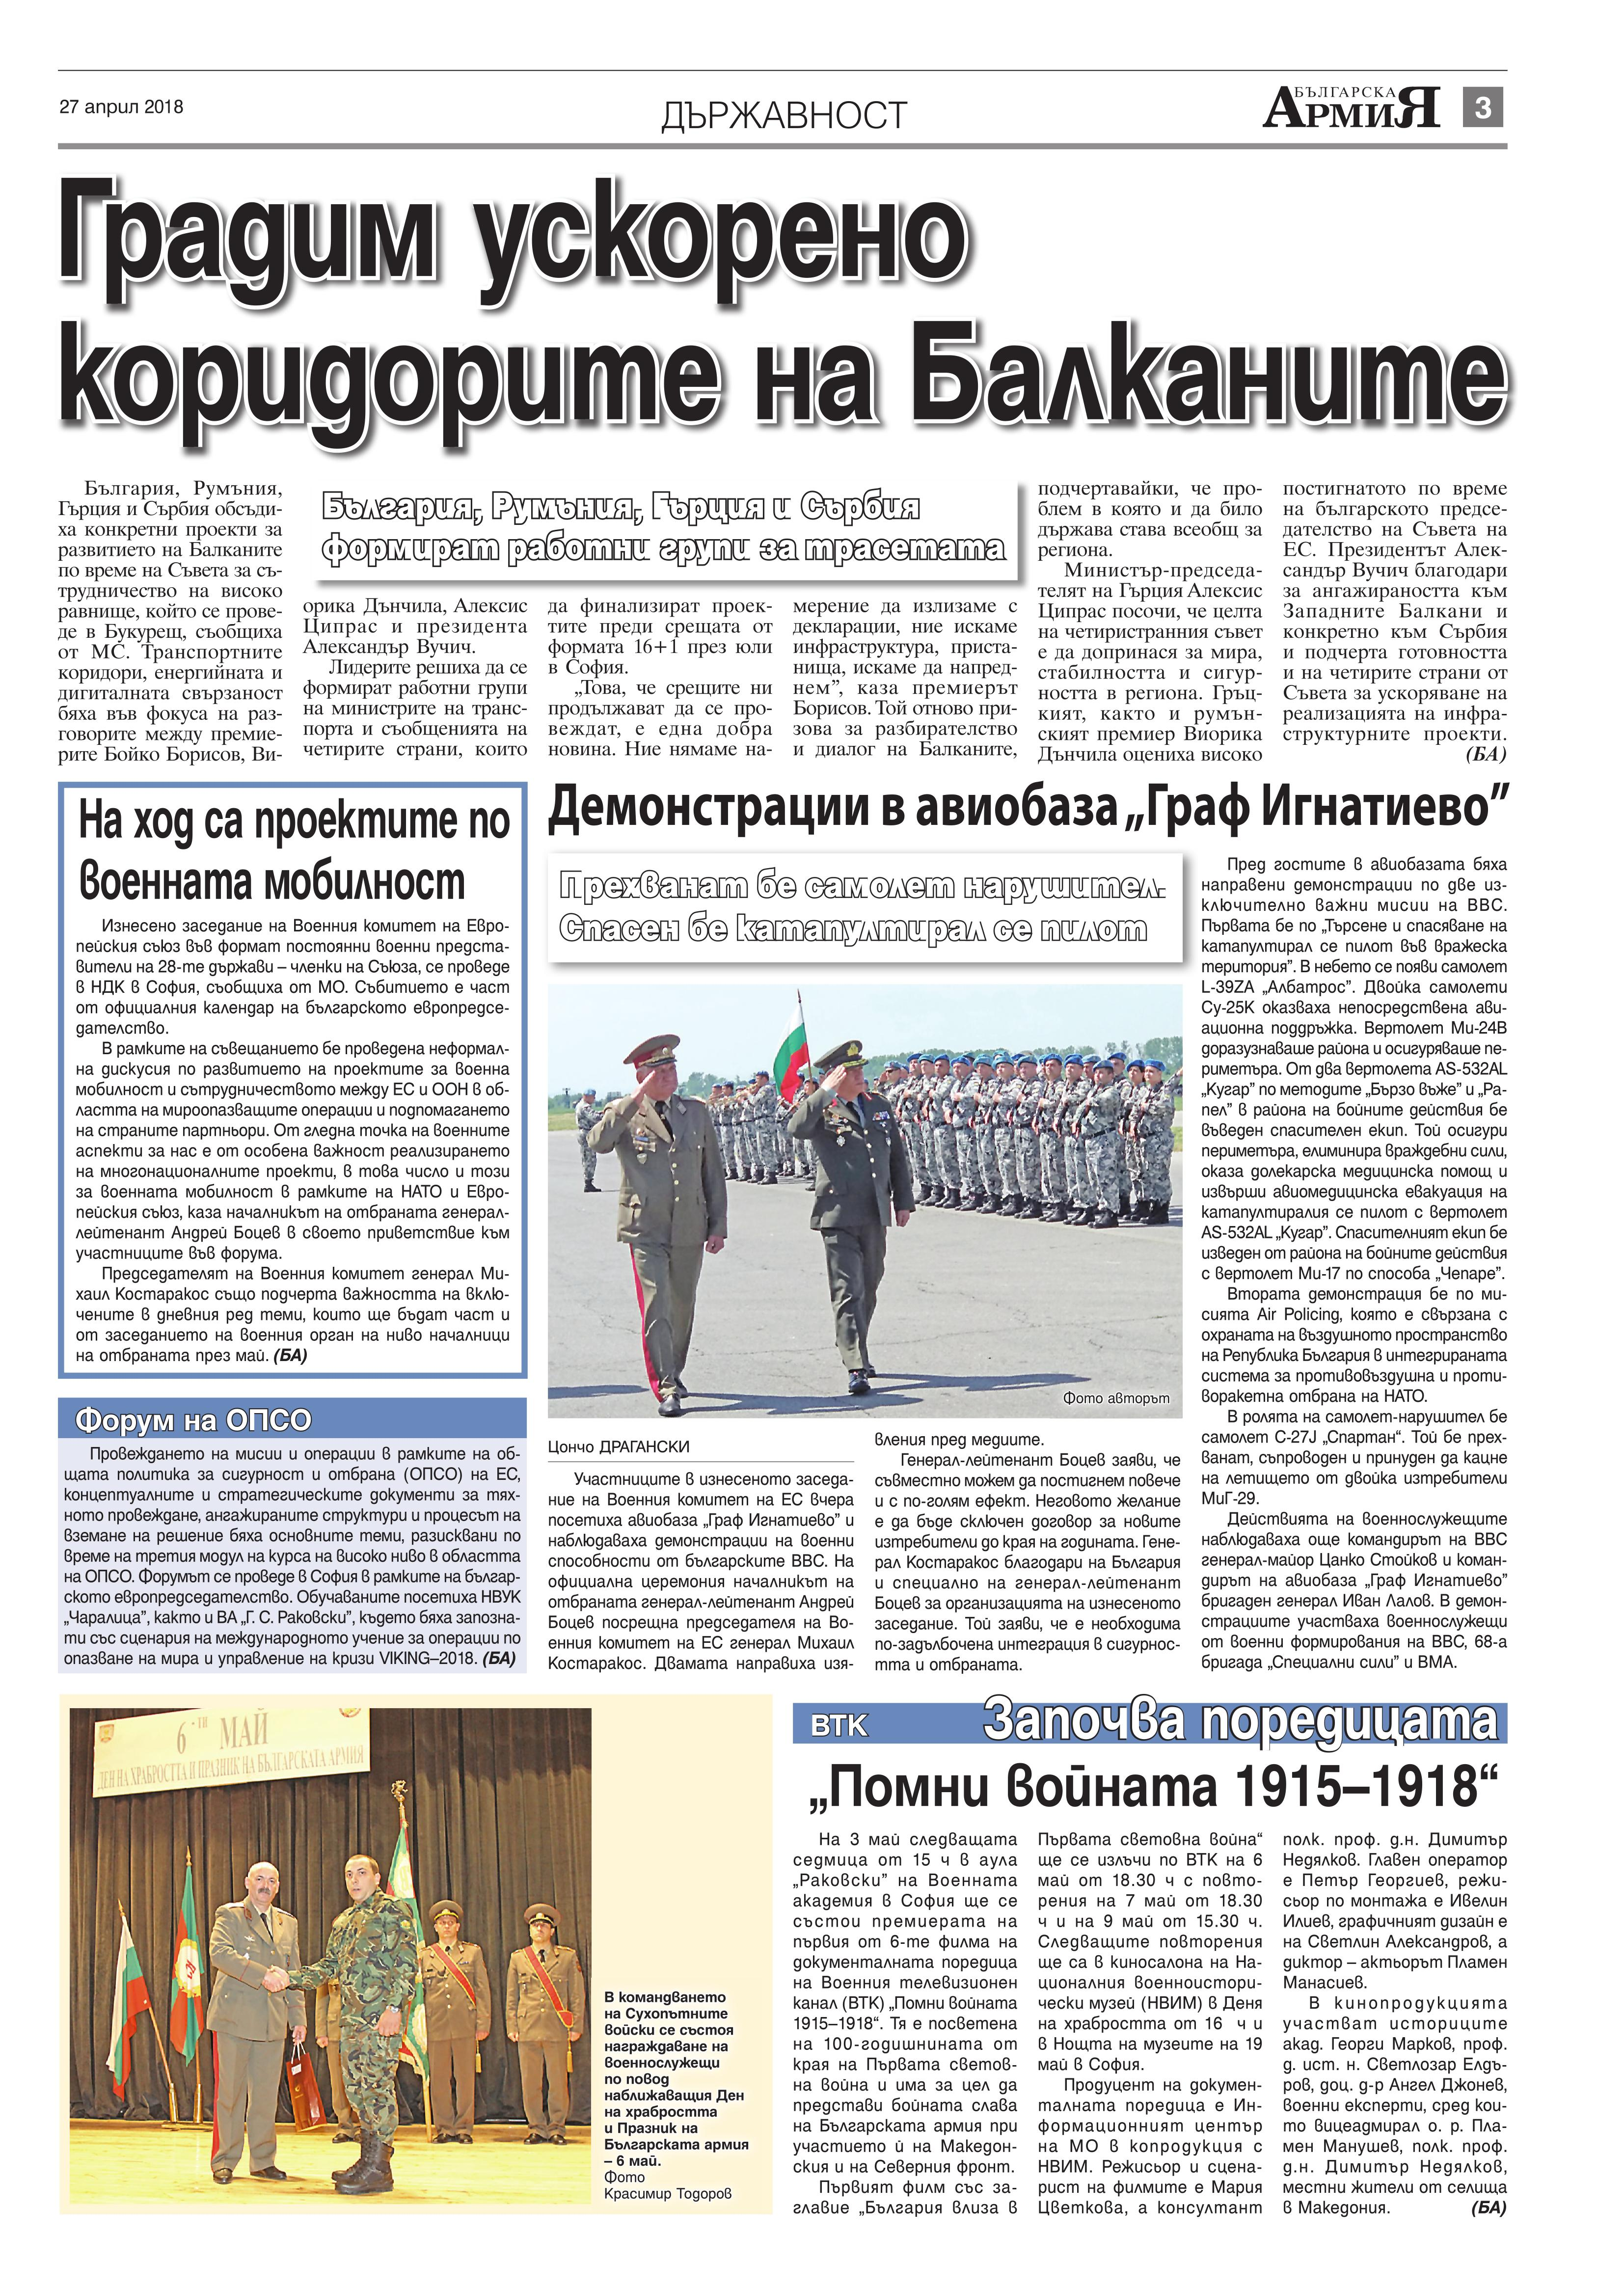 https://armymedia.bg/wp-content/uploads/2015/06/03.page1-Copy-2.jpg